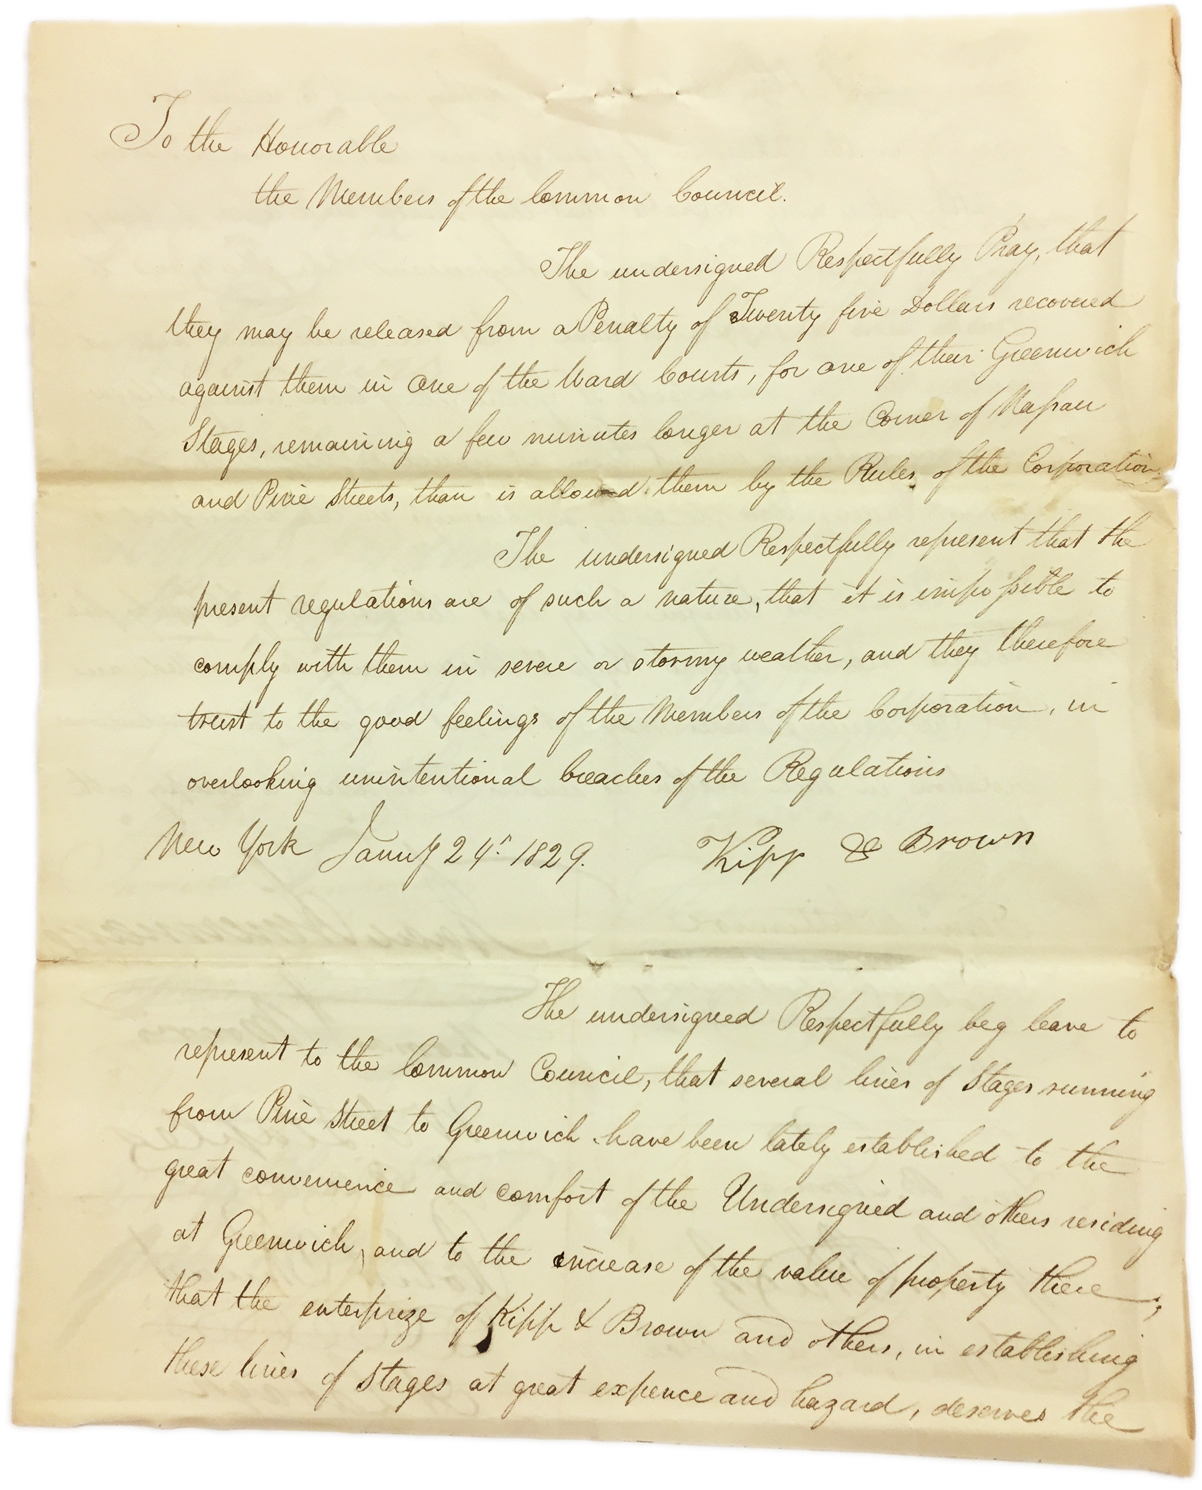 Petition of Kip & Brown, January 24, 1829, Common Council Papers, NYC Municipal Archives.